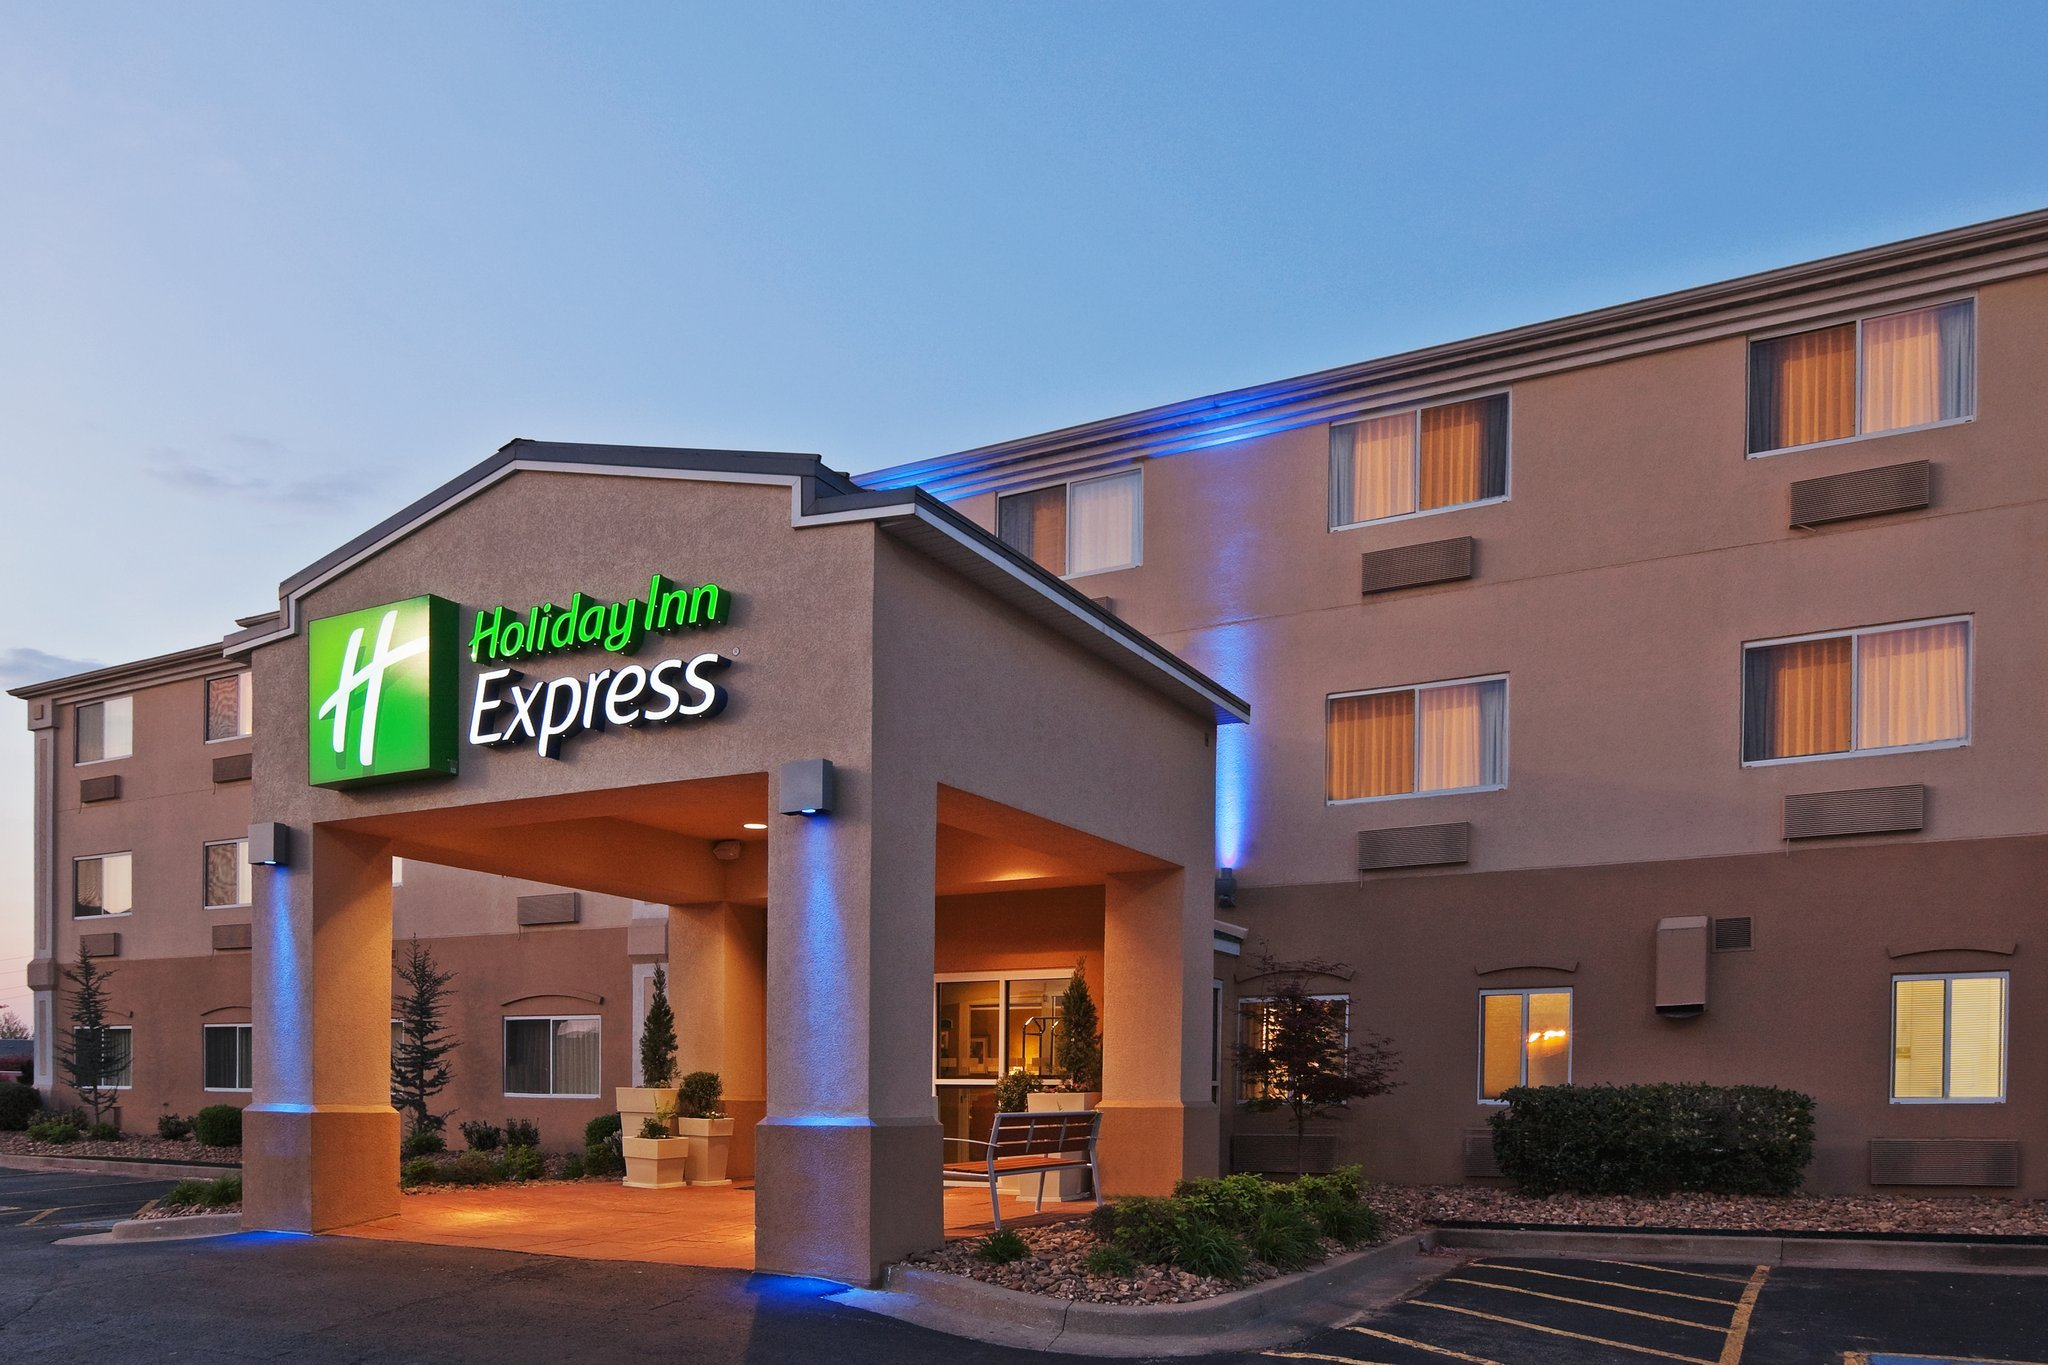 Holiday Inn Express Tulsa-Woodland Hills